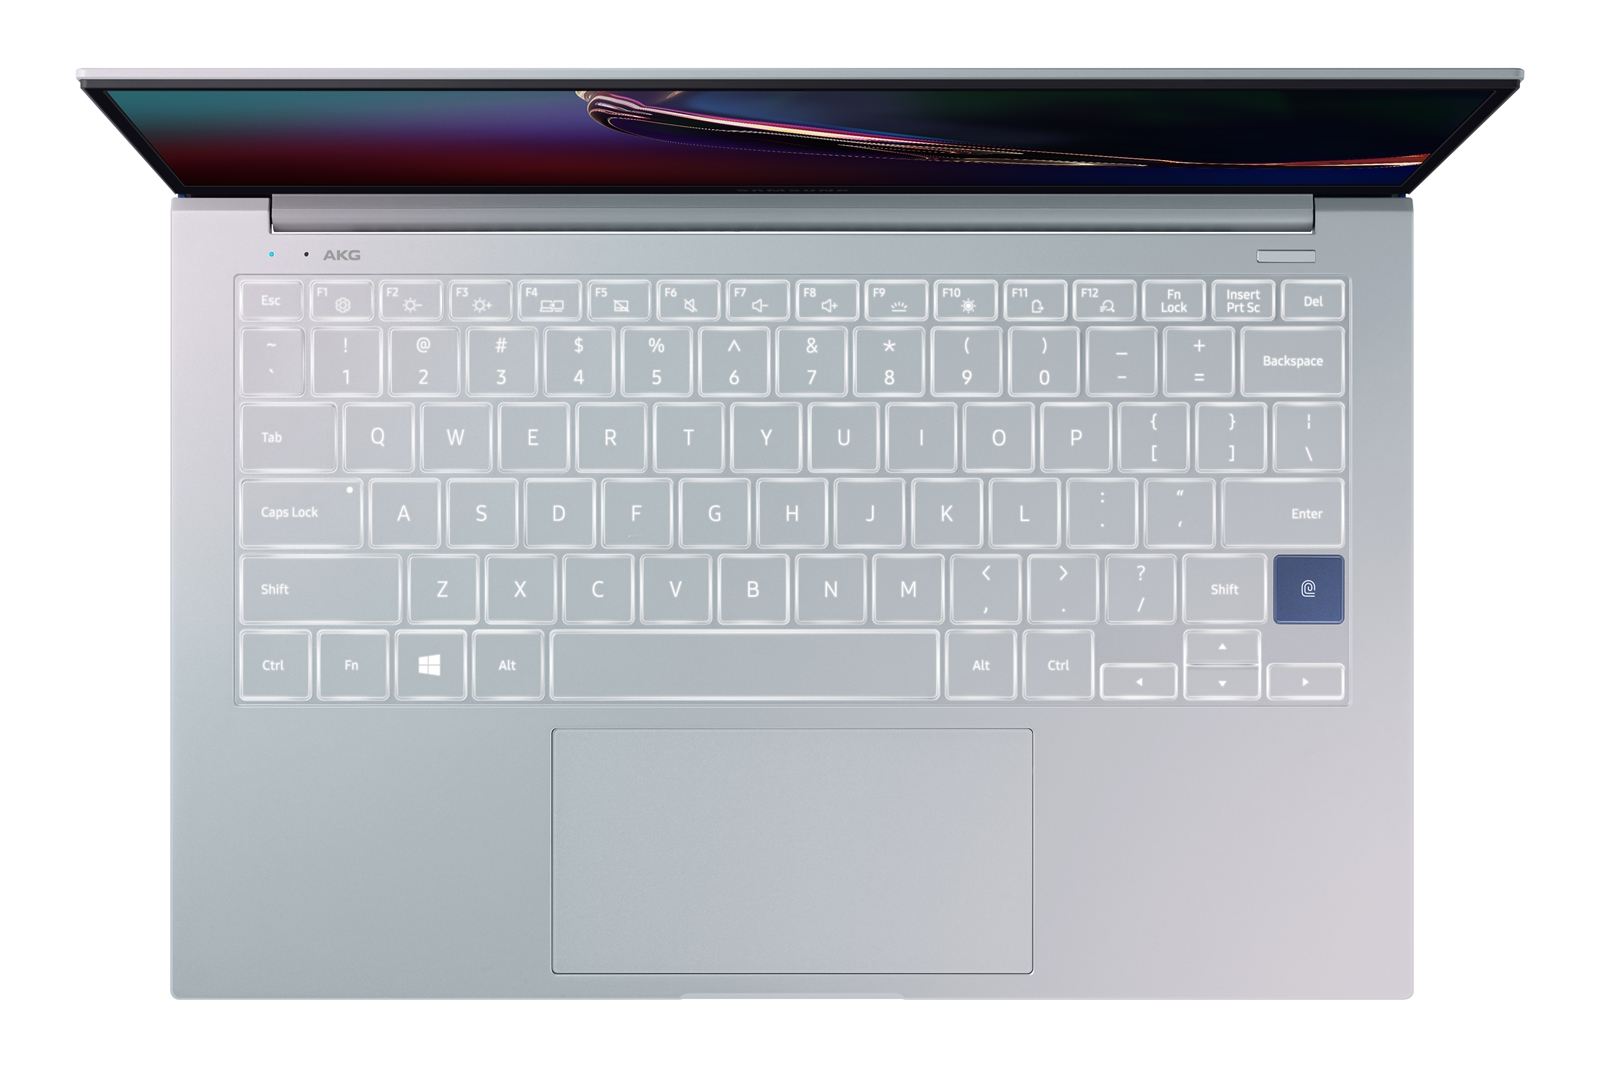 Samsung Galaxy Book Ion paino on alle yhden kilon